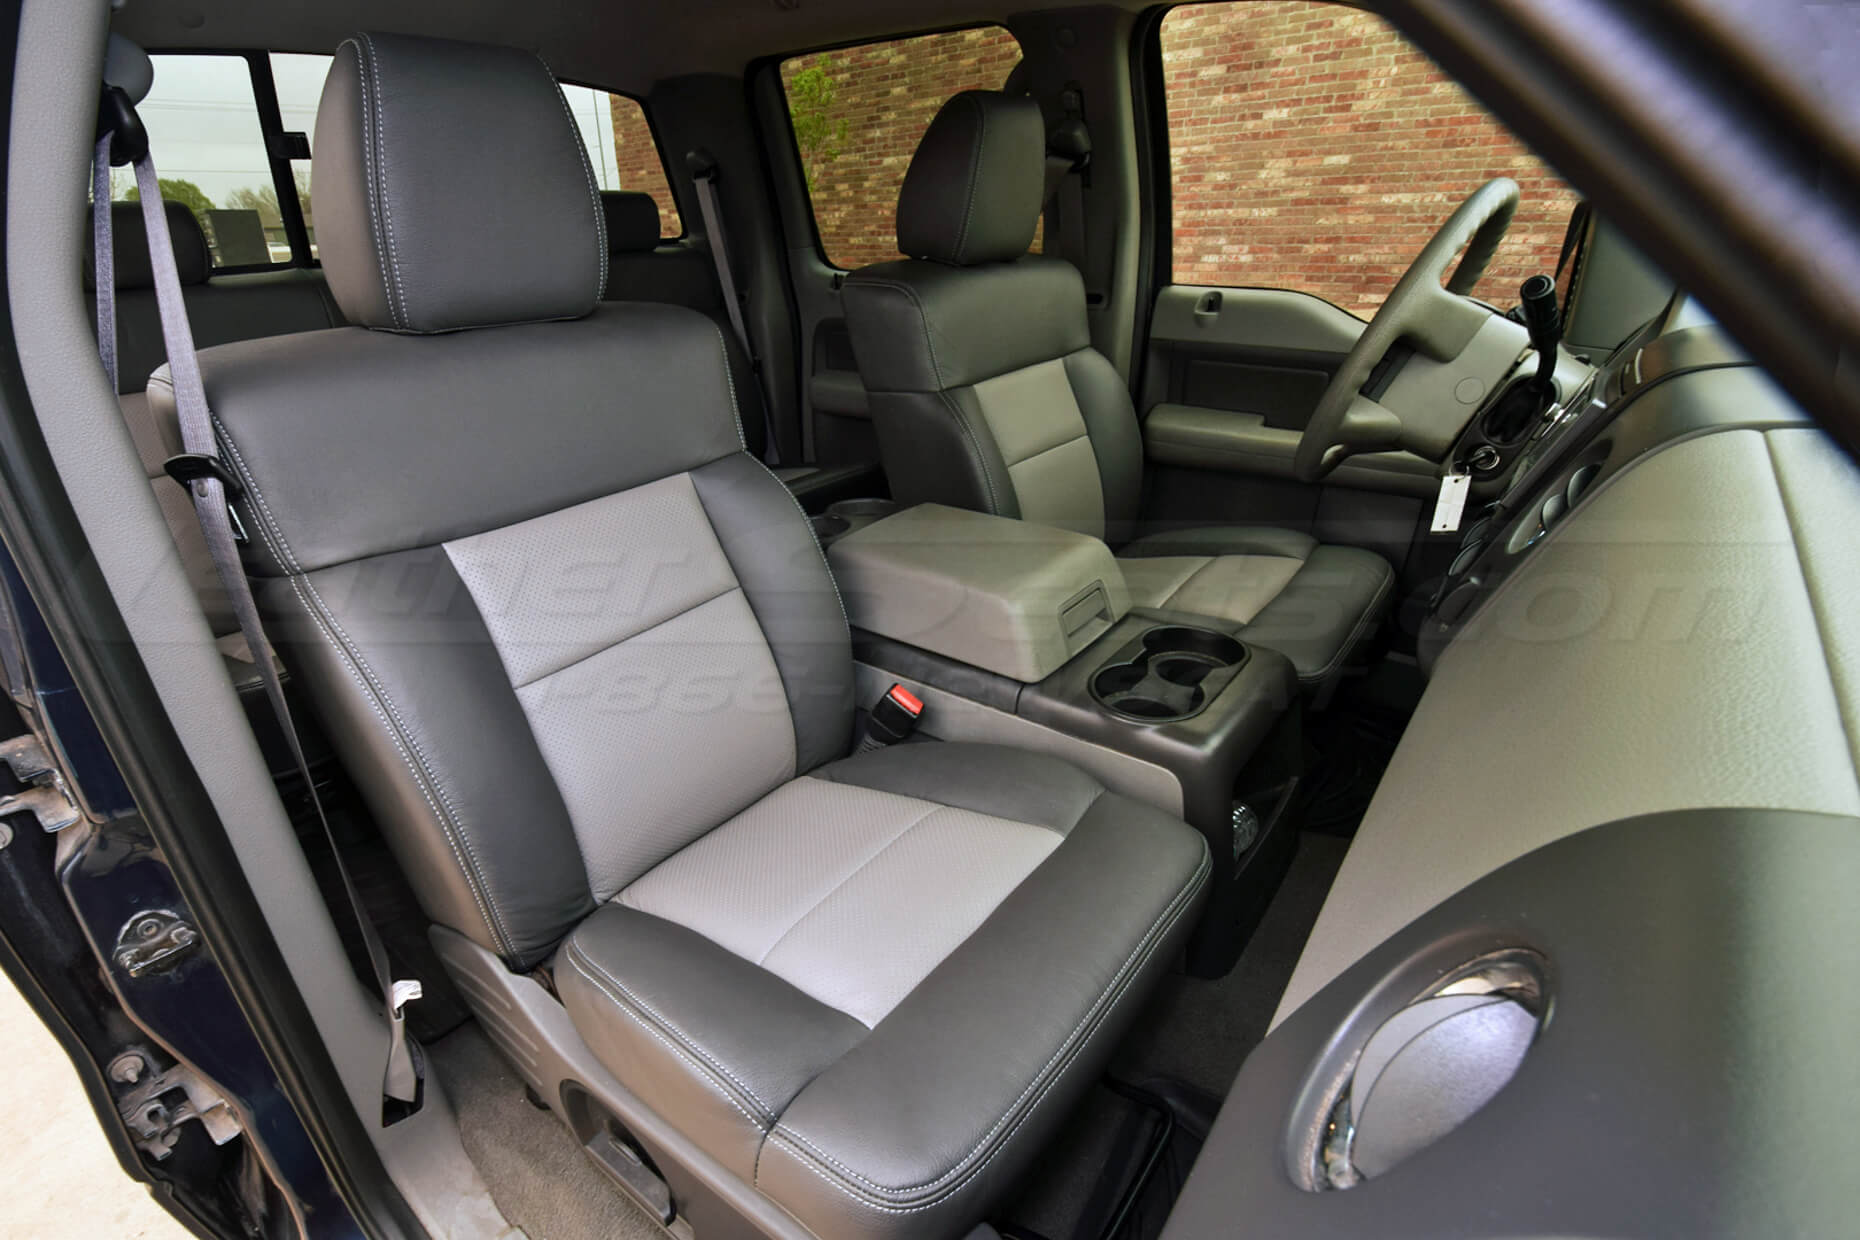 Ford F-150 SuperCrew with installed upholstery